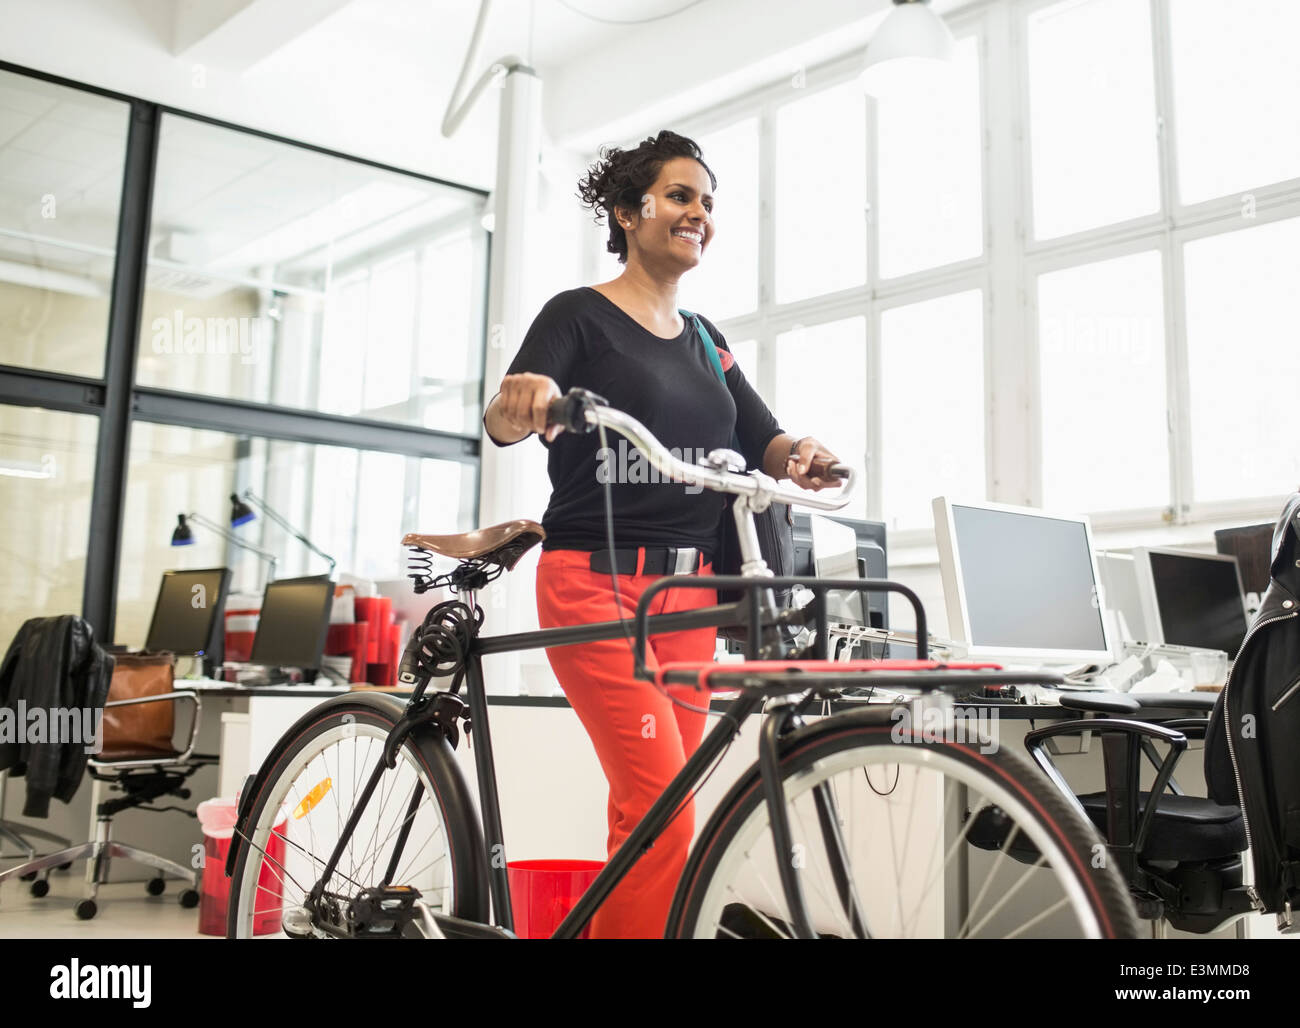 Smiling businesswoman with location walking in creative office Photo Stock